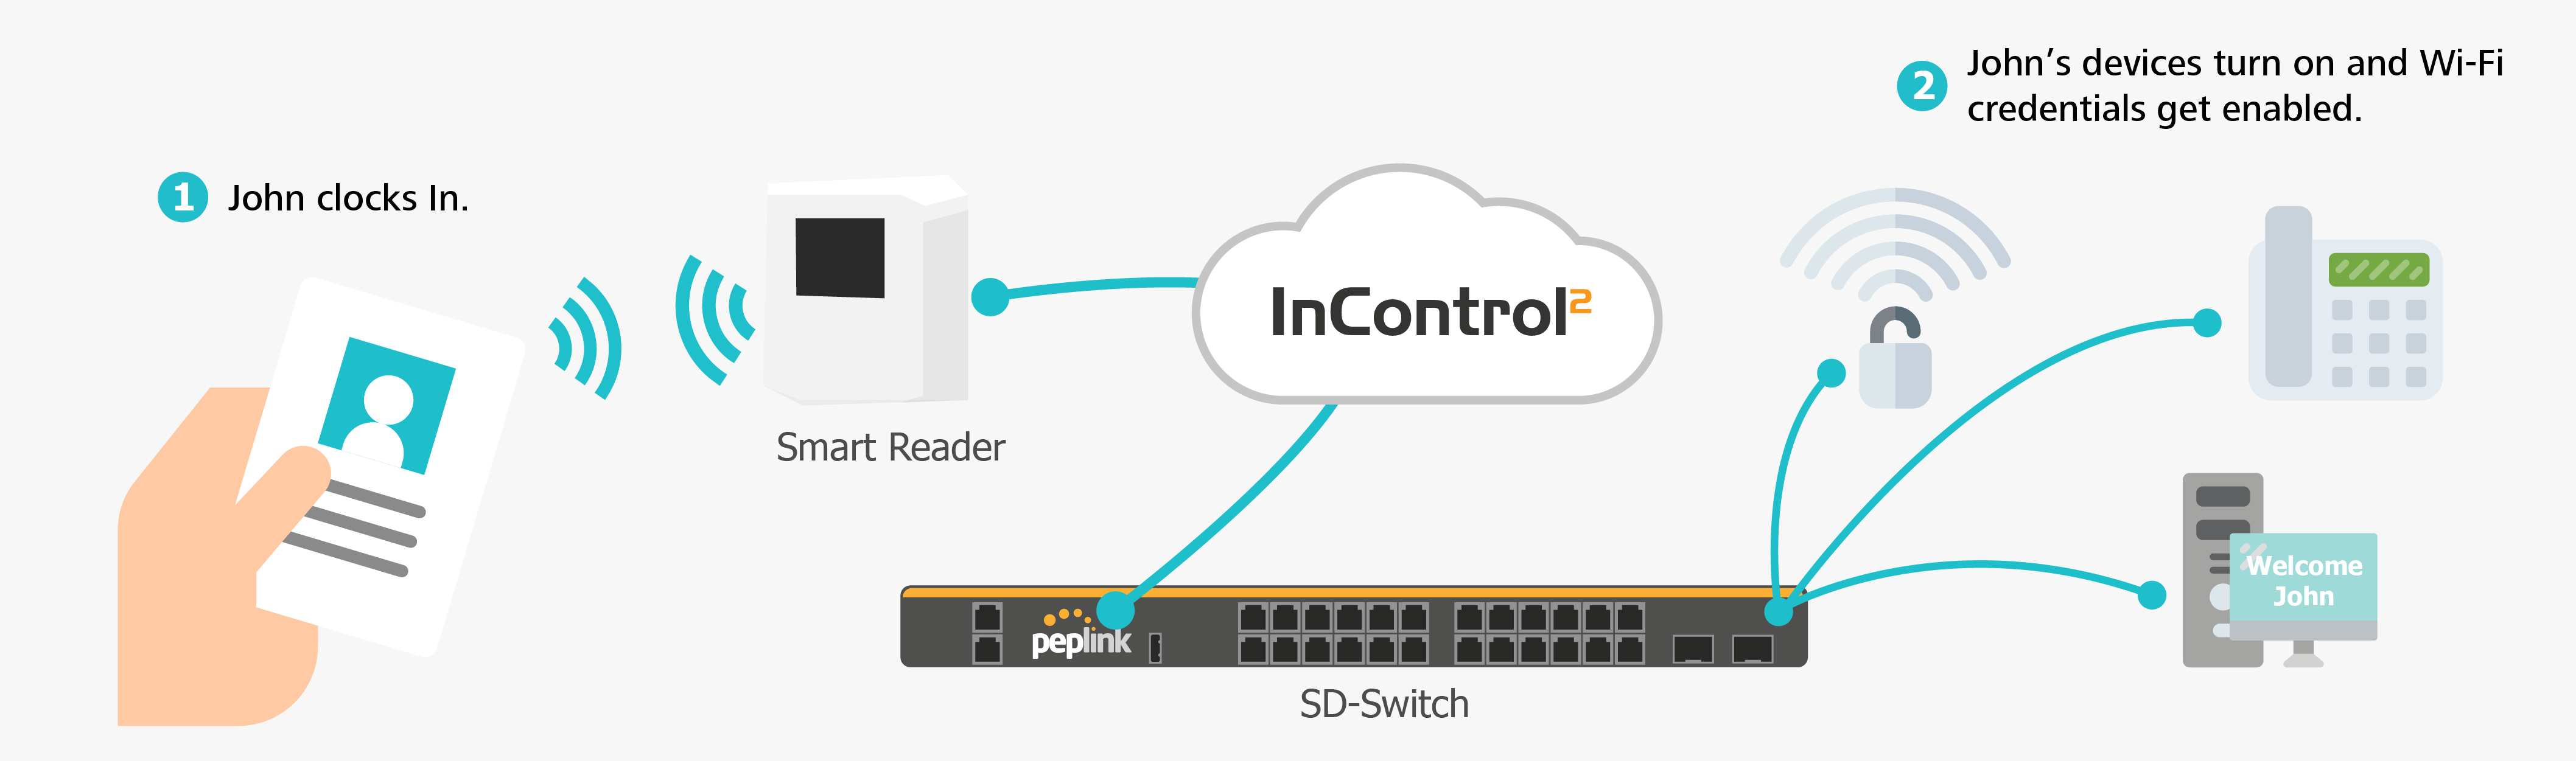 Combine with SD-Switch for an Intelligent Office